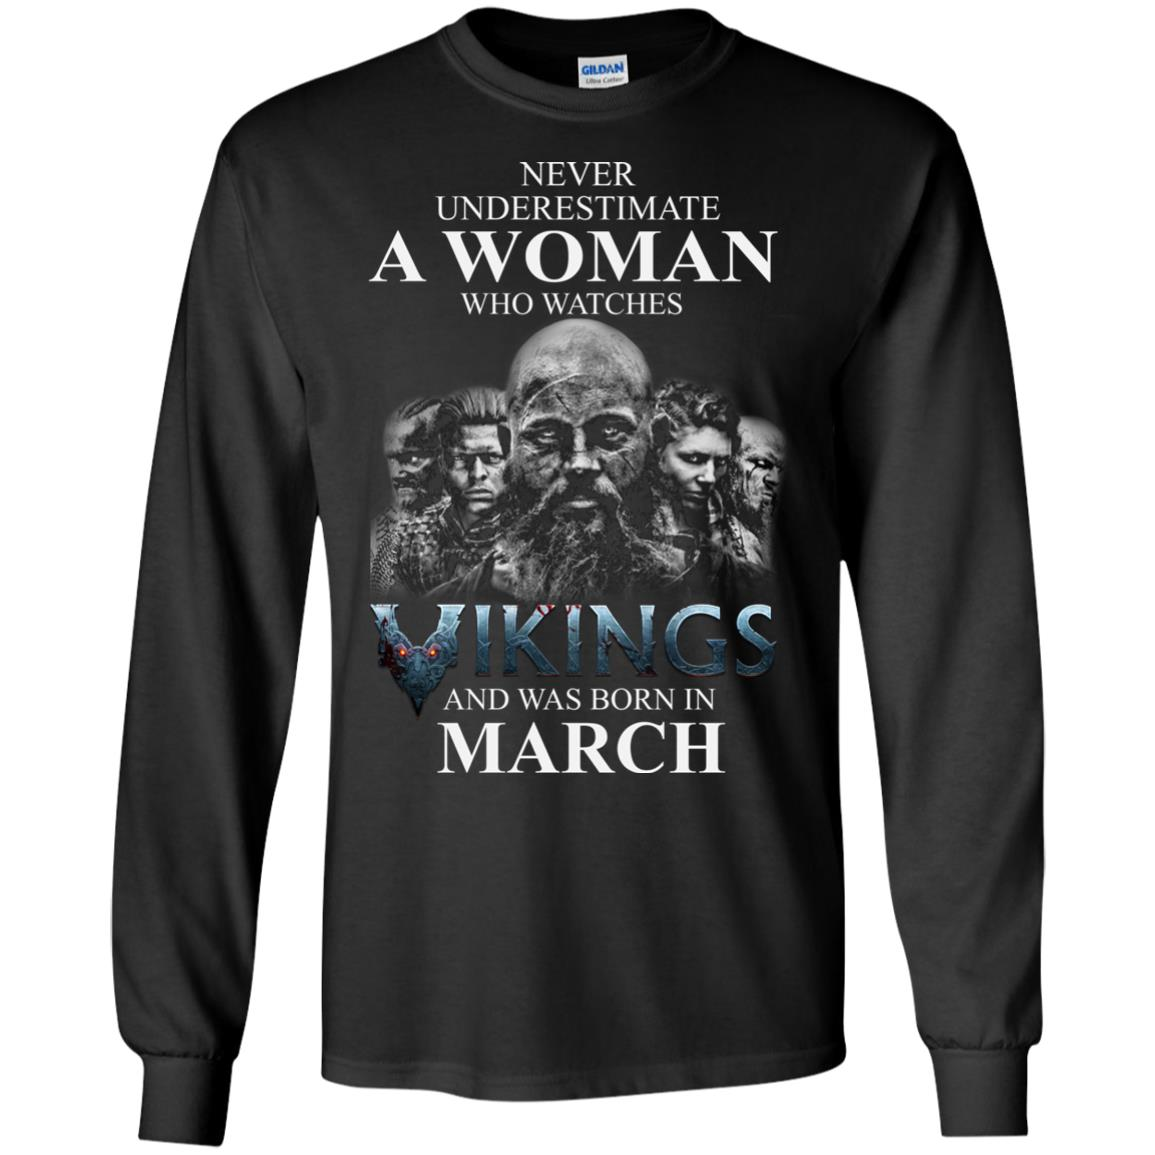 image 1329 - Never Underestimate A woman who watches Vikings and was born in March shirt